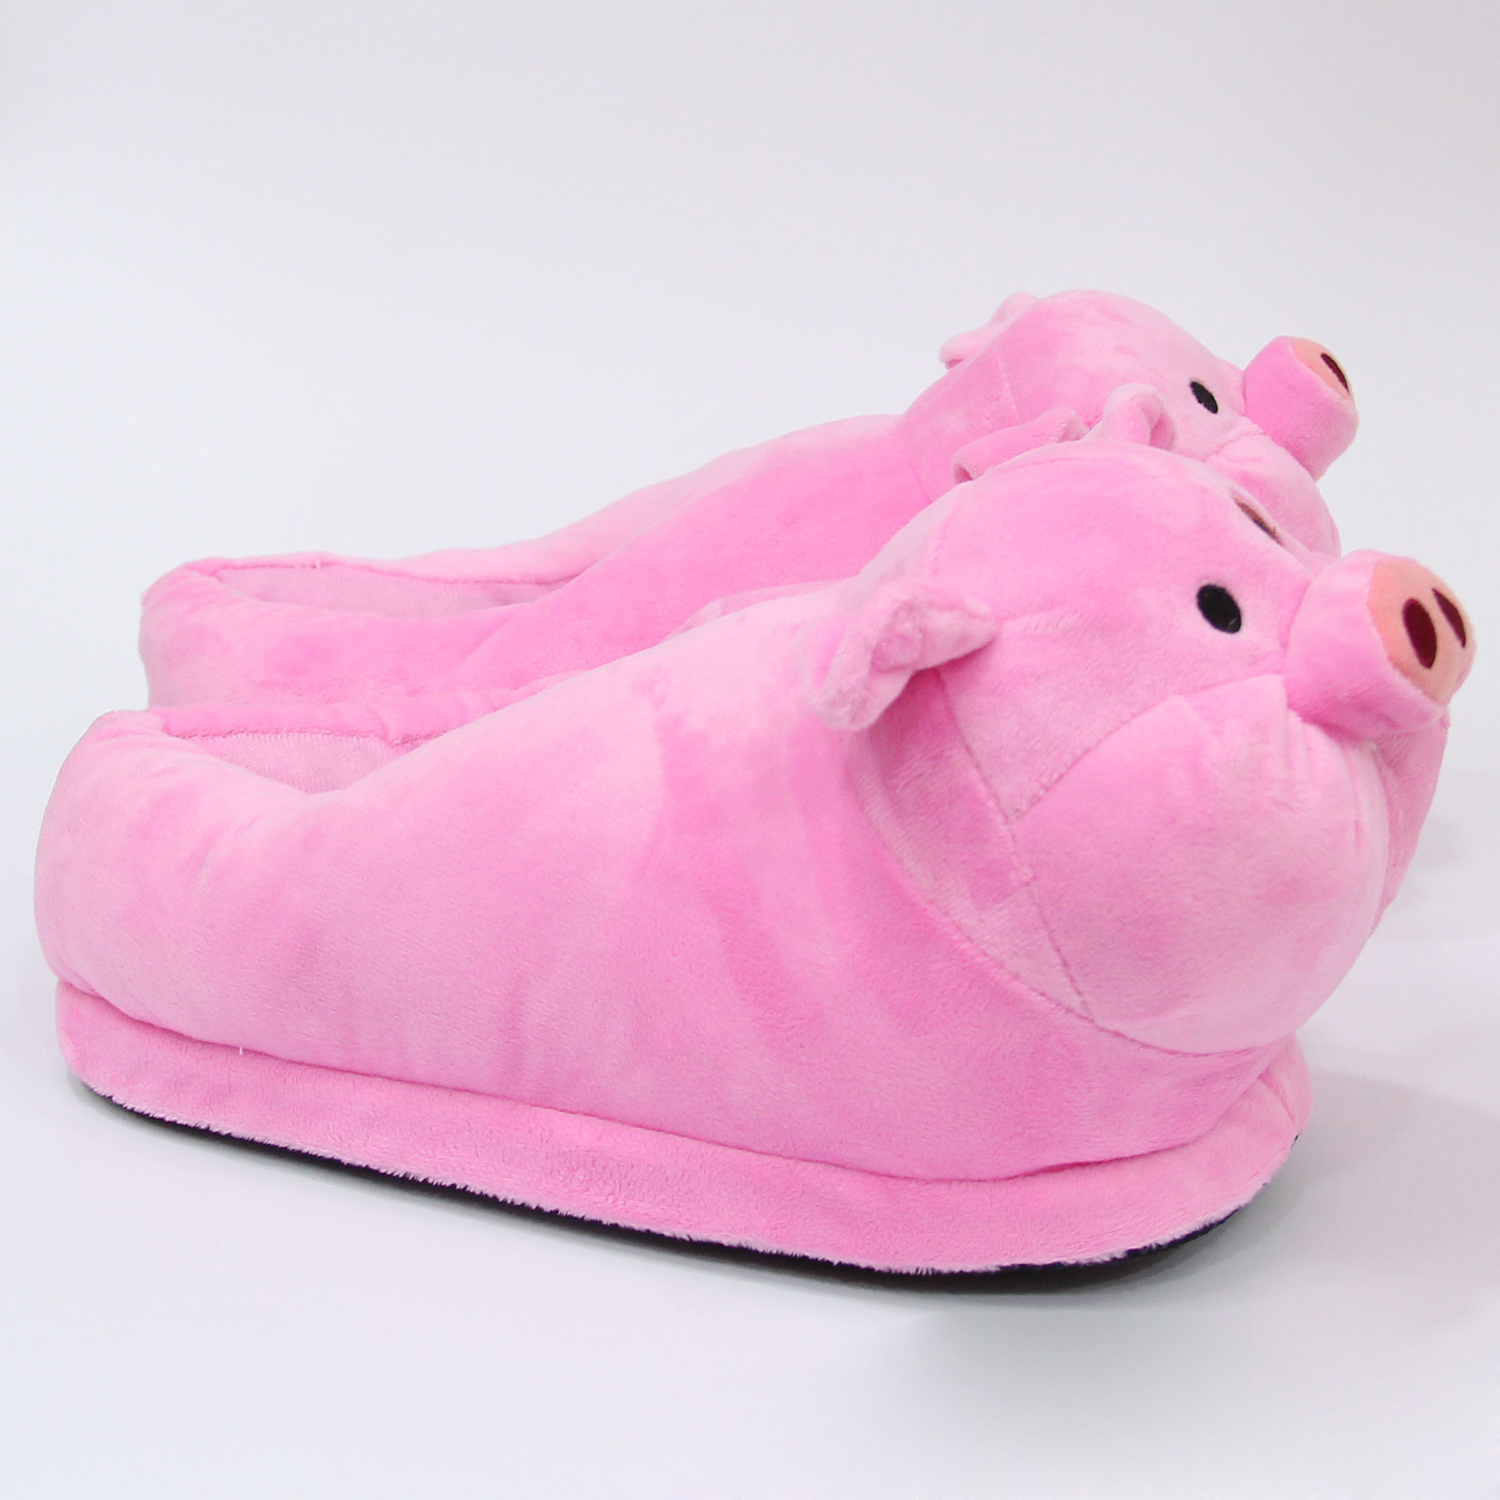 82a0986f226 Aniwon - House Slippers